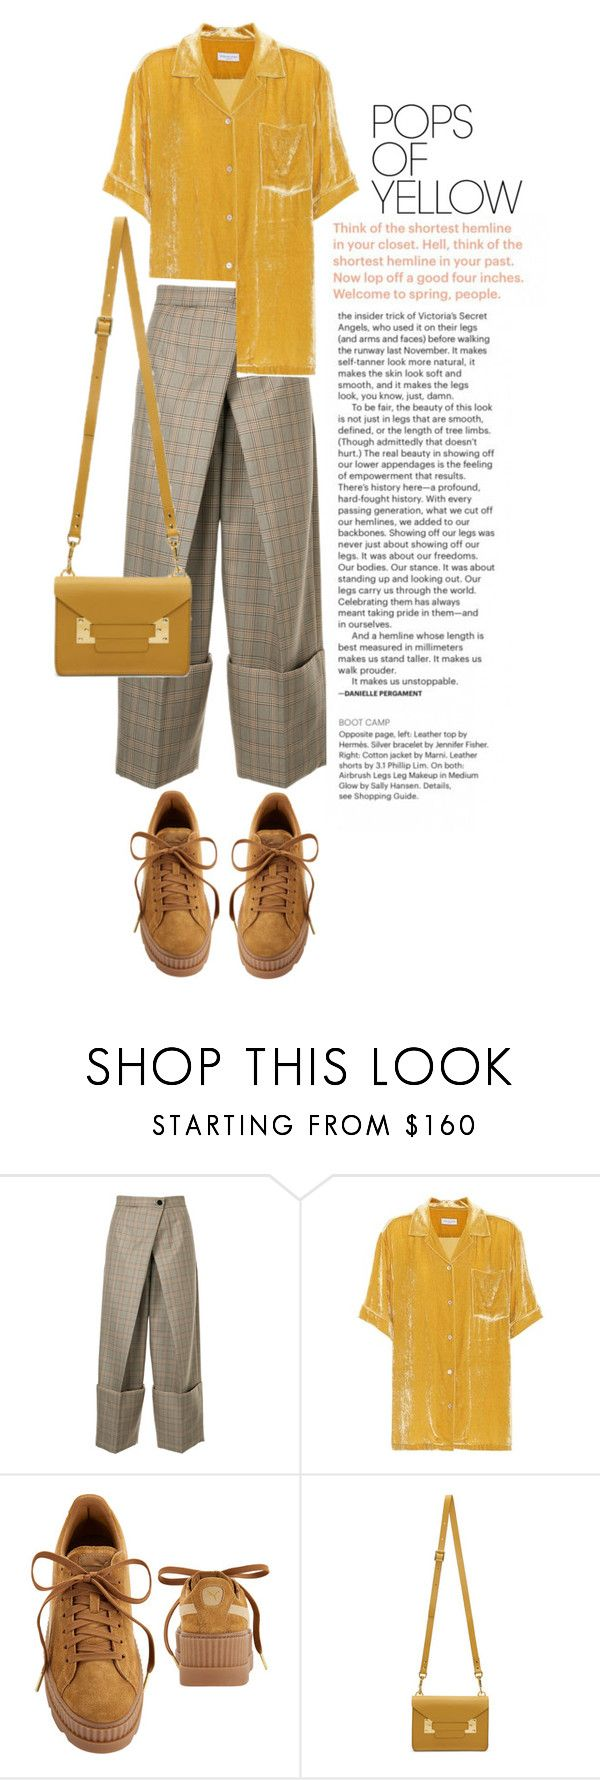 """""""RISE UP"""" by amltra on Polyvore featuring Astraet, Dries Van Noten, Puma, Sophie Hulme, PopsOfYellow and NYFWYellow"""